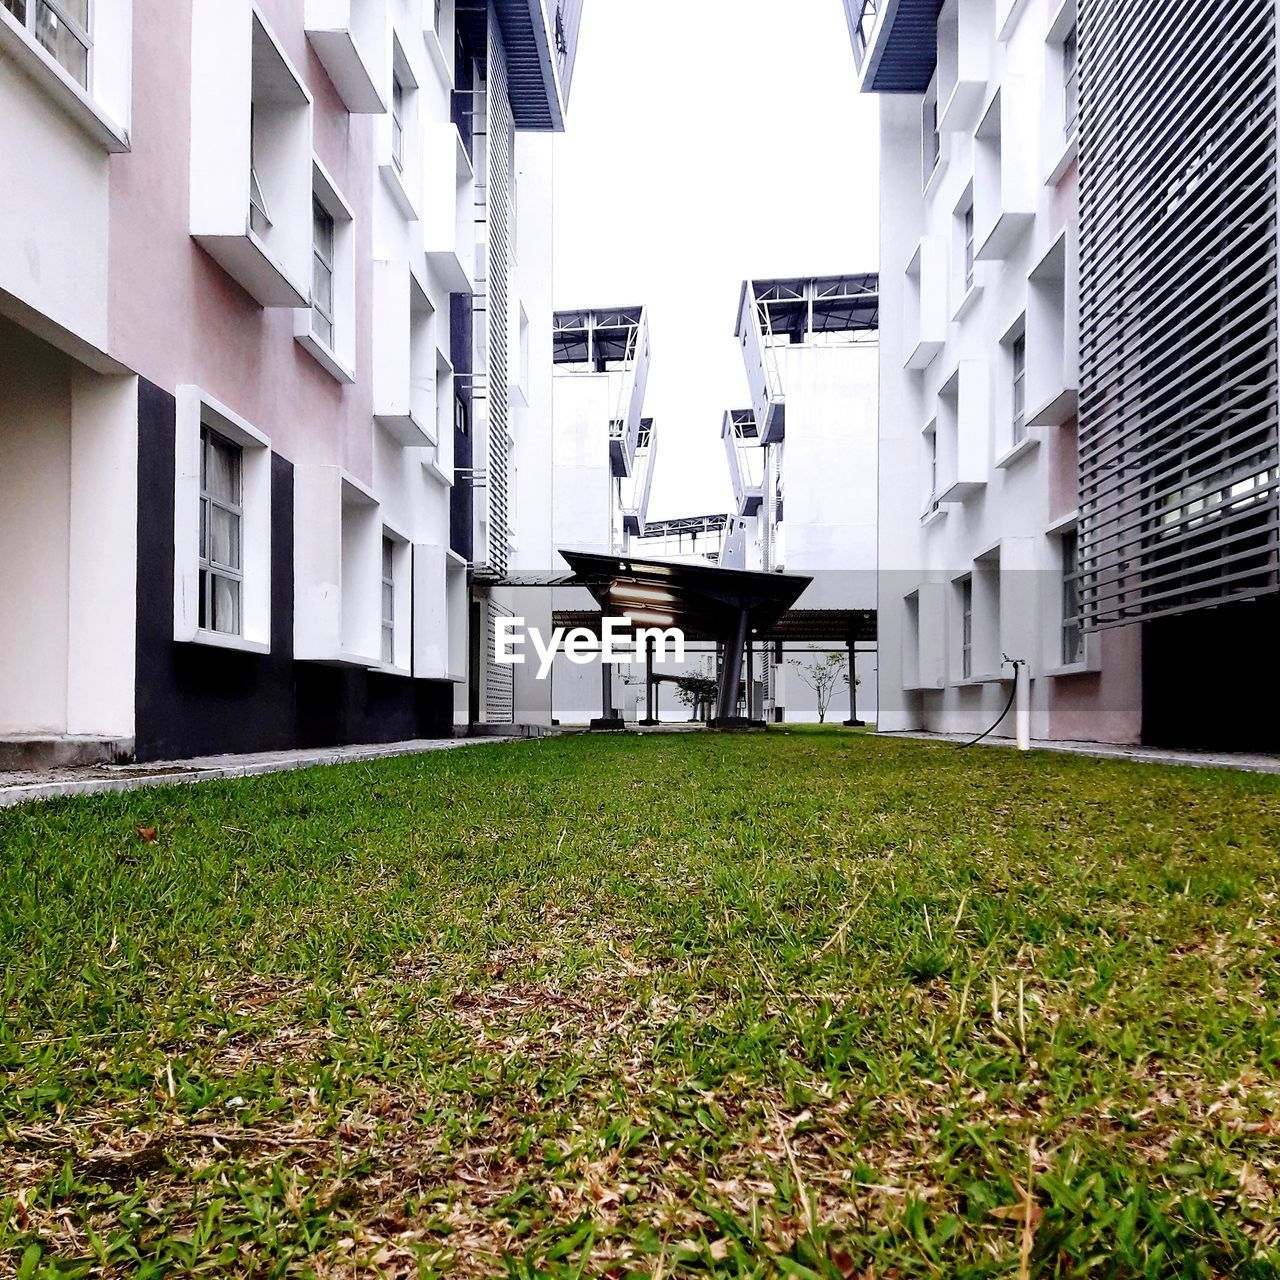 built structure, building exterior, architecture, building, grass, plant, day, residential district, nature, field, no people, land, outdoors, seat, green color, window, house, lawn, front or back yard, chair, apartment, place